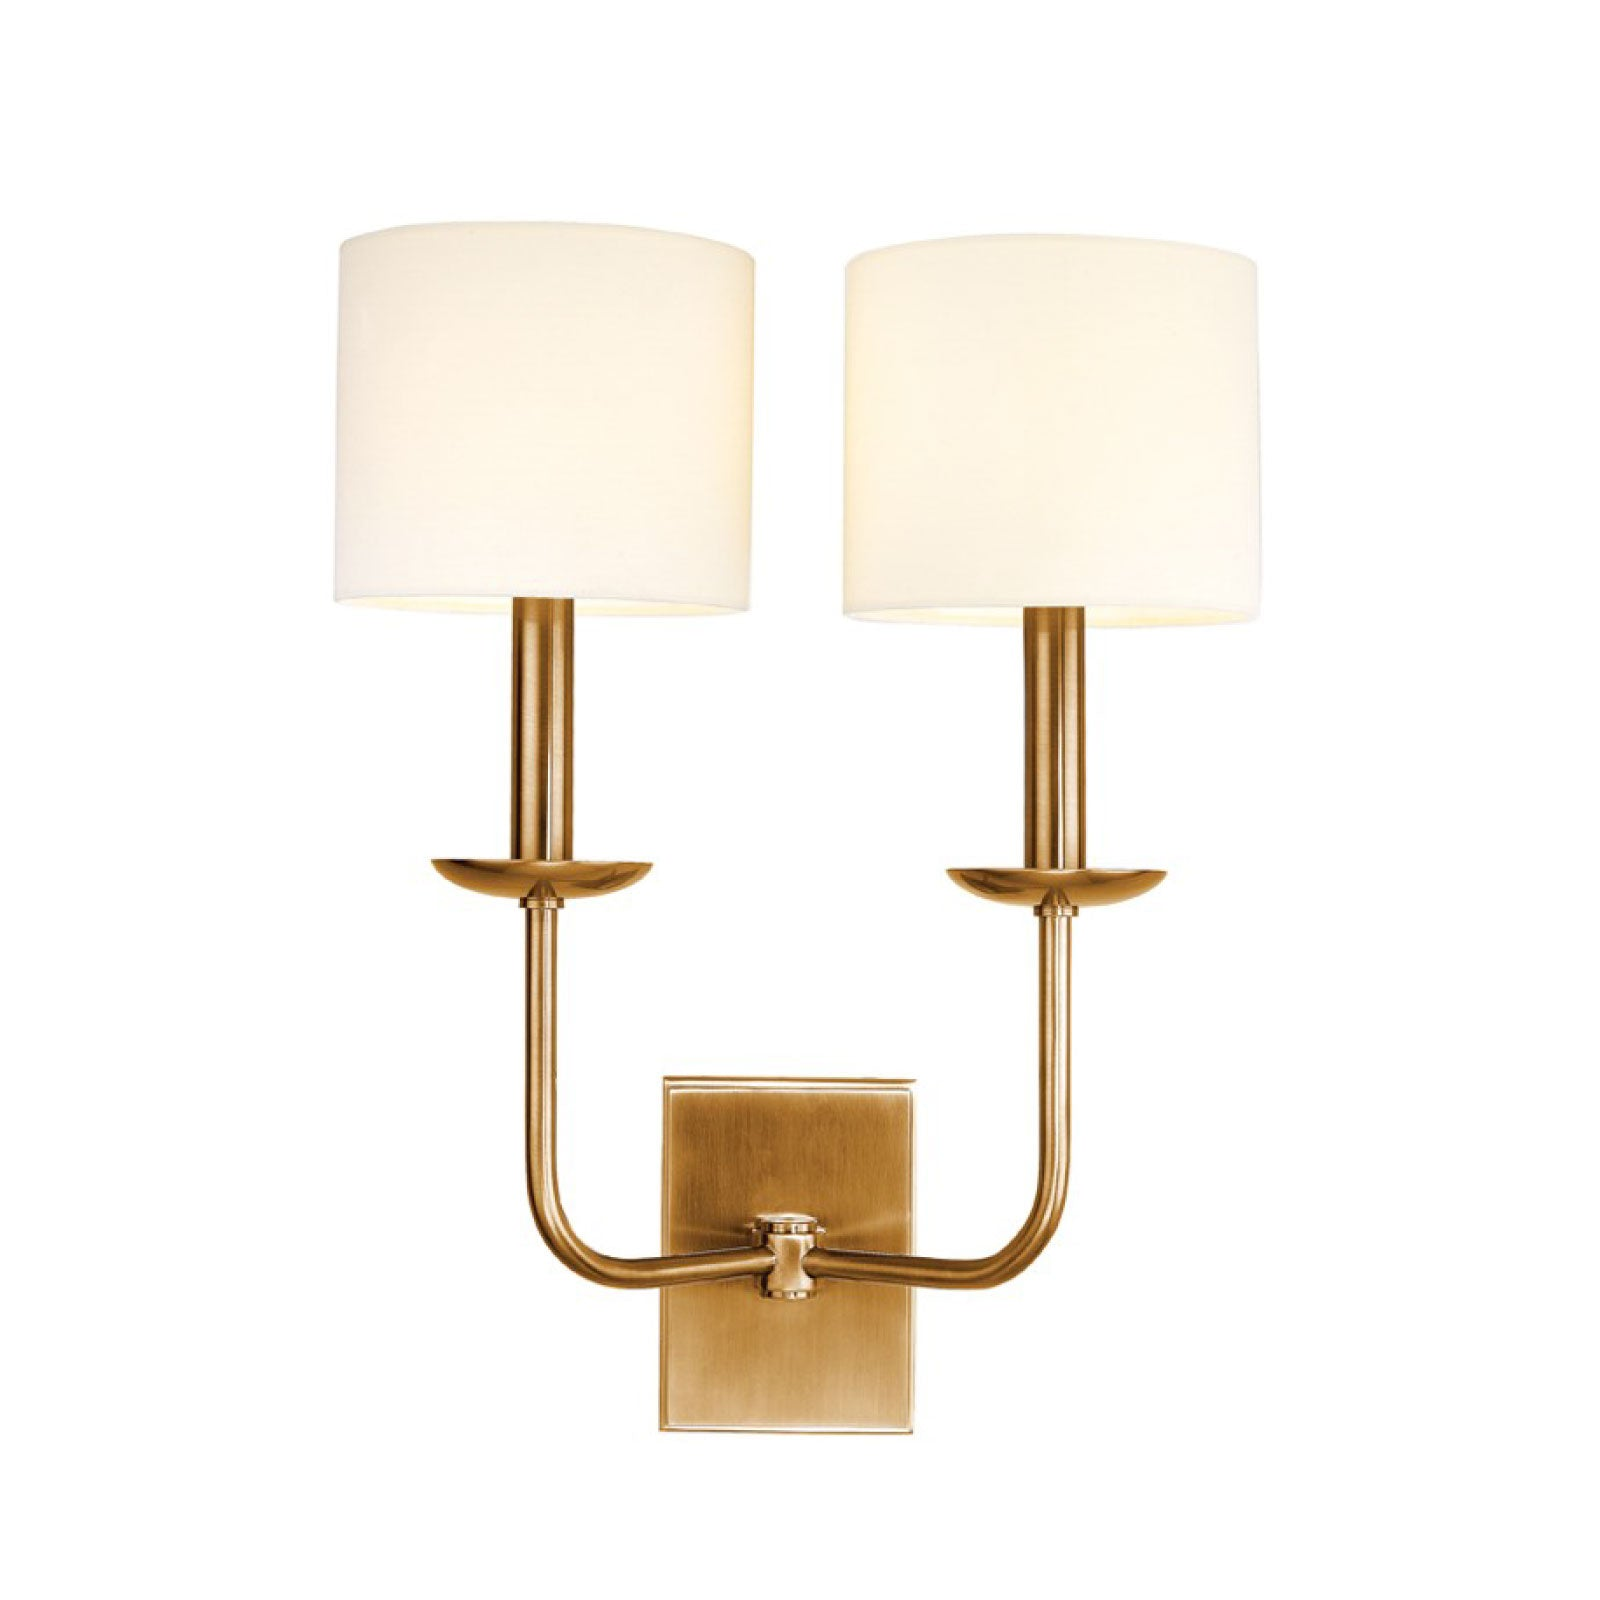 Hudson Sconce in Brass